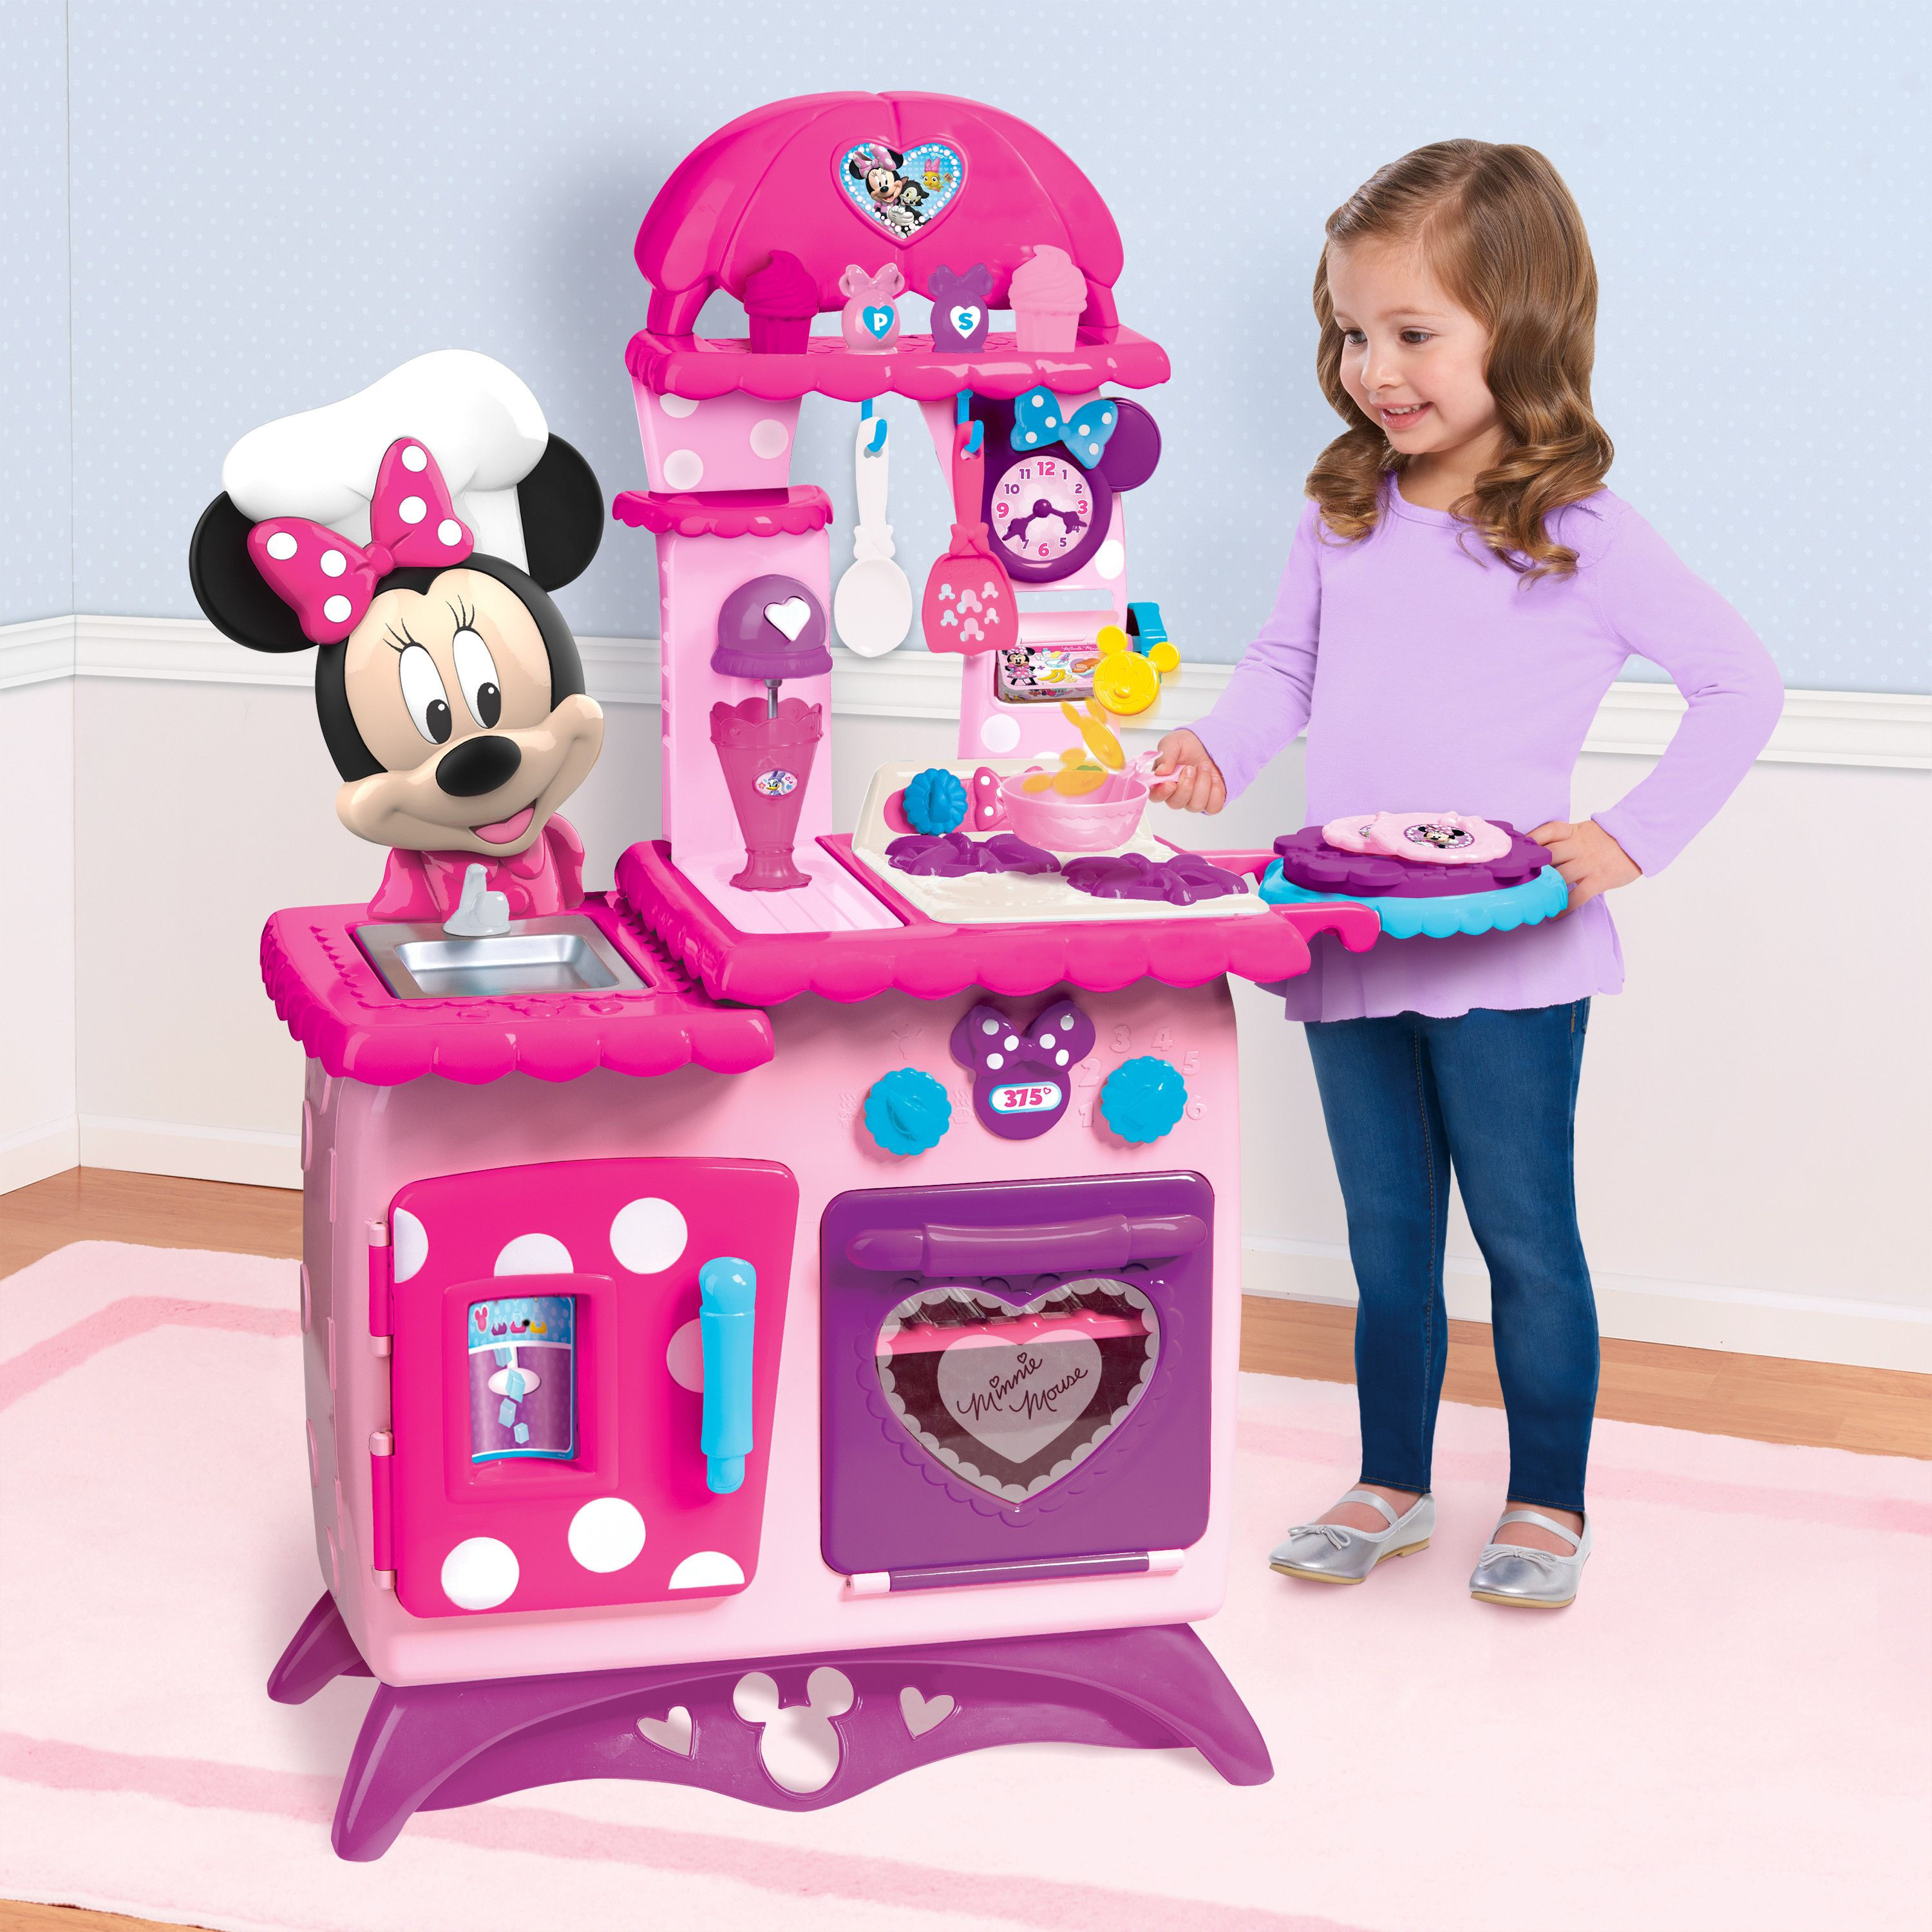 Minnie Flipping Fun Kitchen Ages 3 Walmart Com Minnie Mouse Kitchen Minnie Mouse Girl Kids Play Kitchen